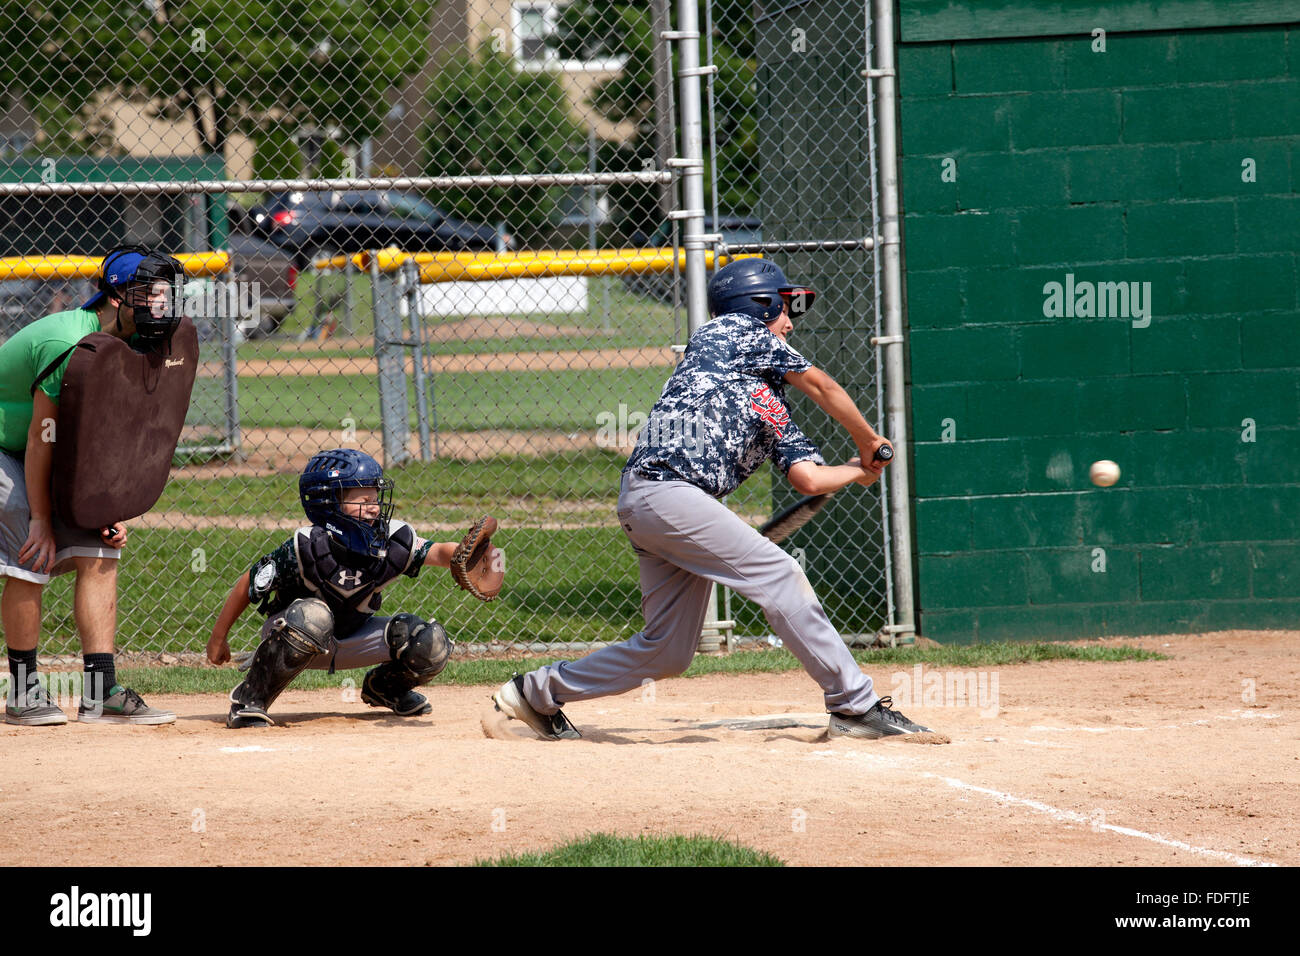 Batter swinging at ball in boys age 12 youth baseball game. St Paul Minnesota MN USA - Stock Image